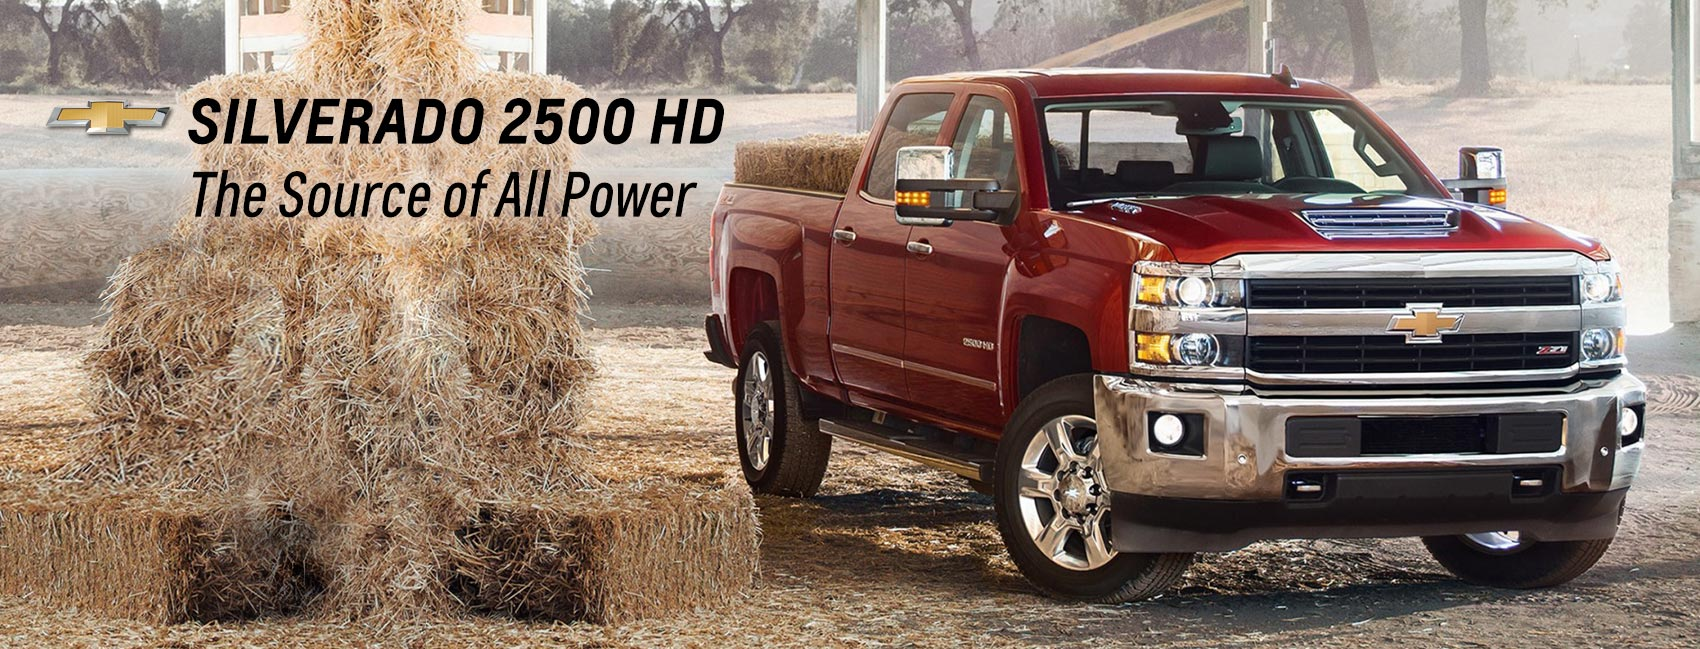 Chevrolet Silverado 2500 HD commercial pickup truck